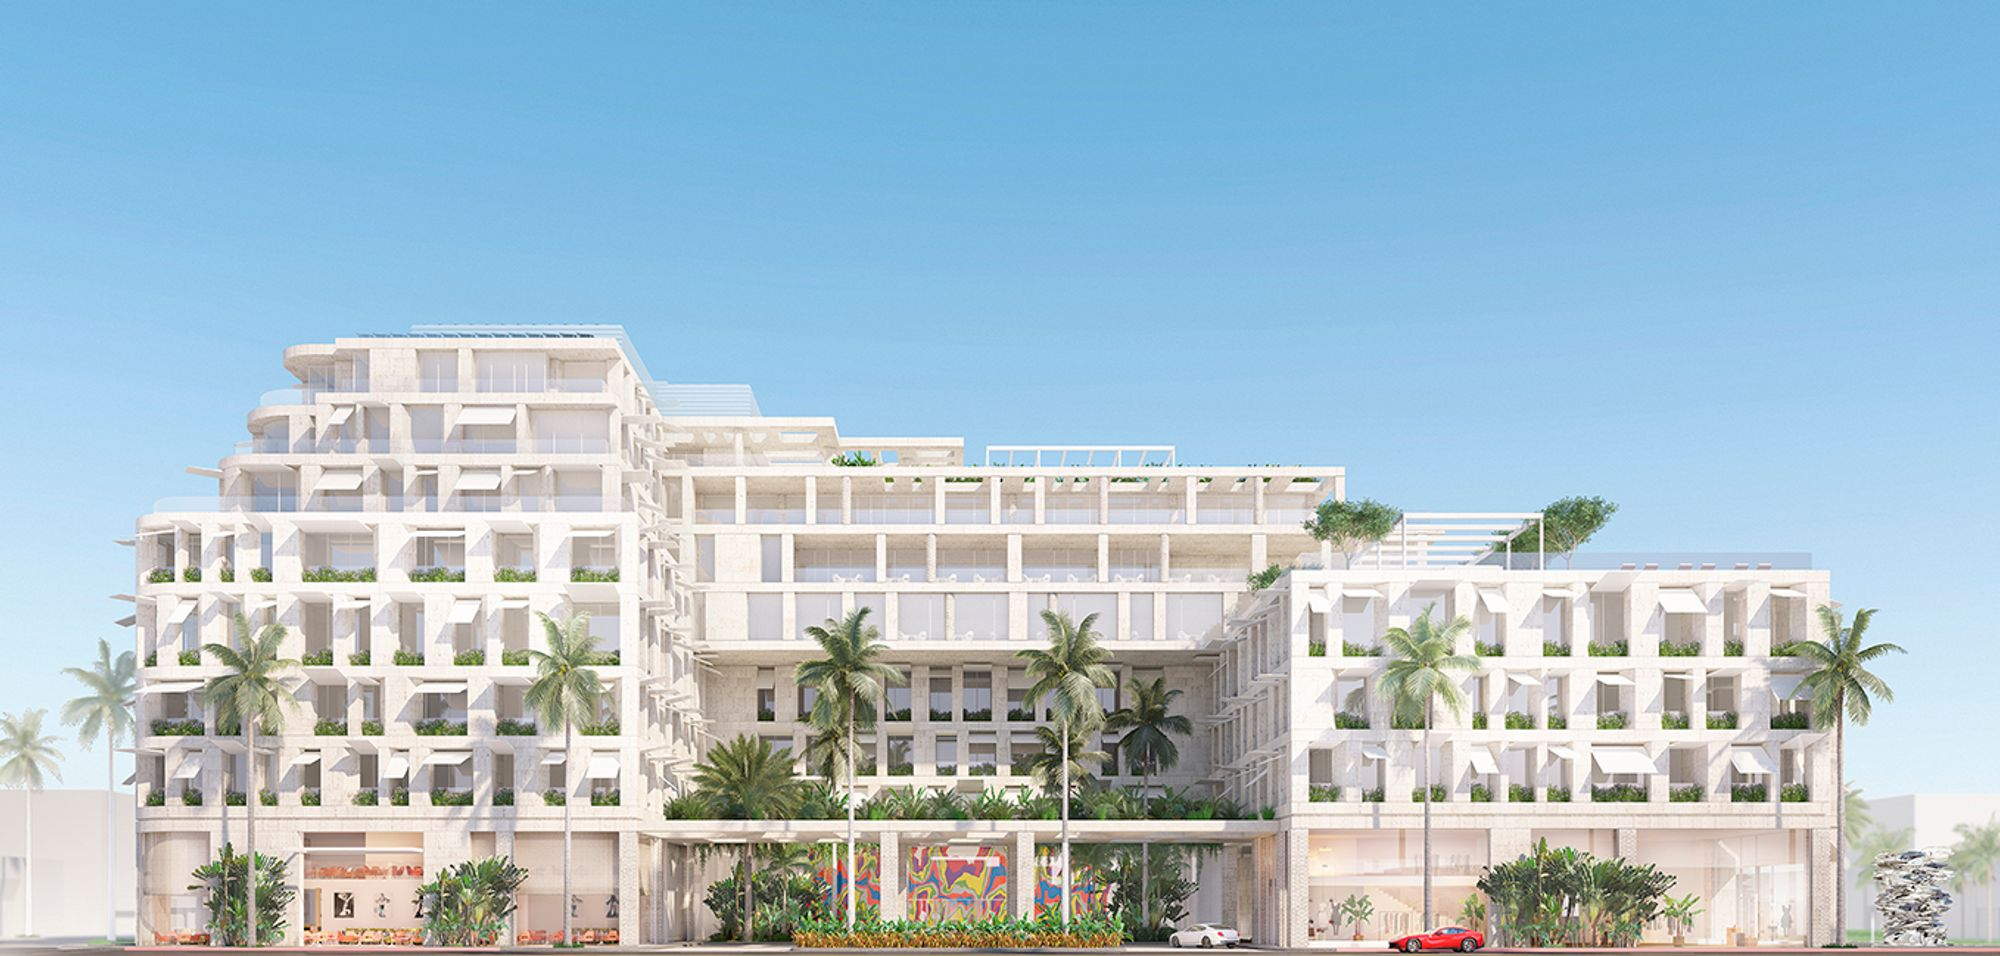 Project Image for Cheval Blanc Beverly Hills